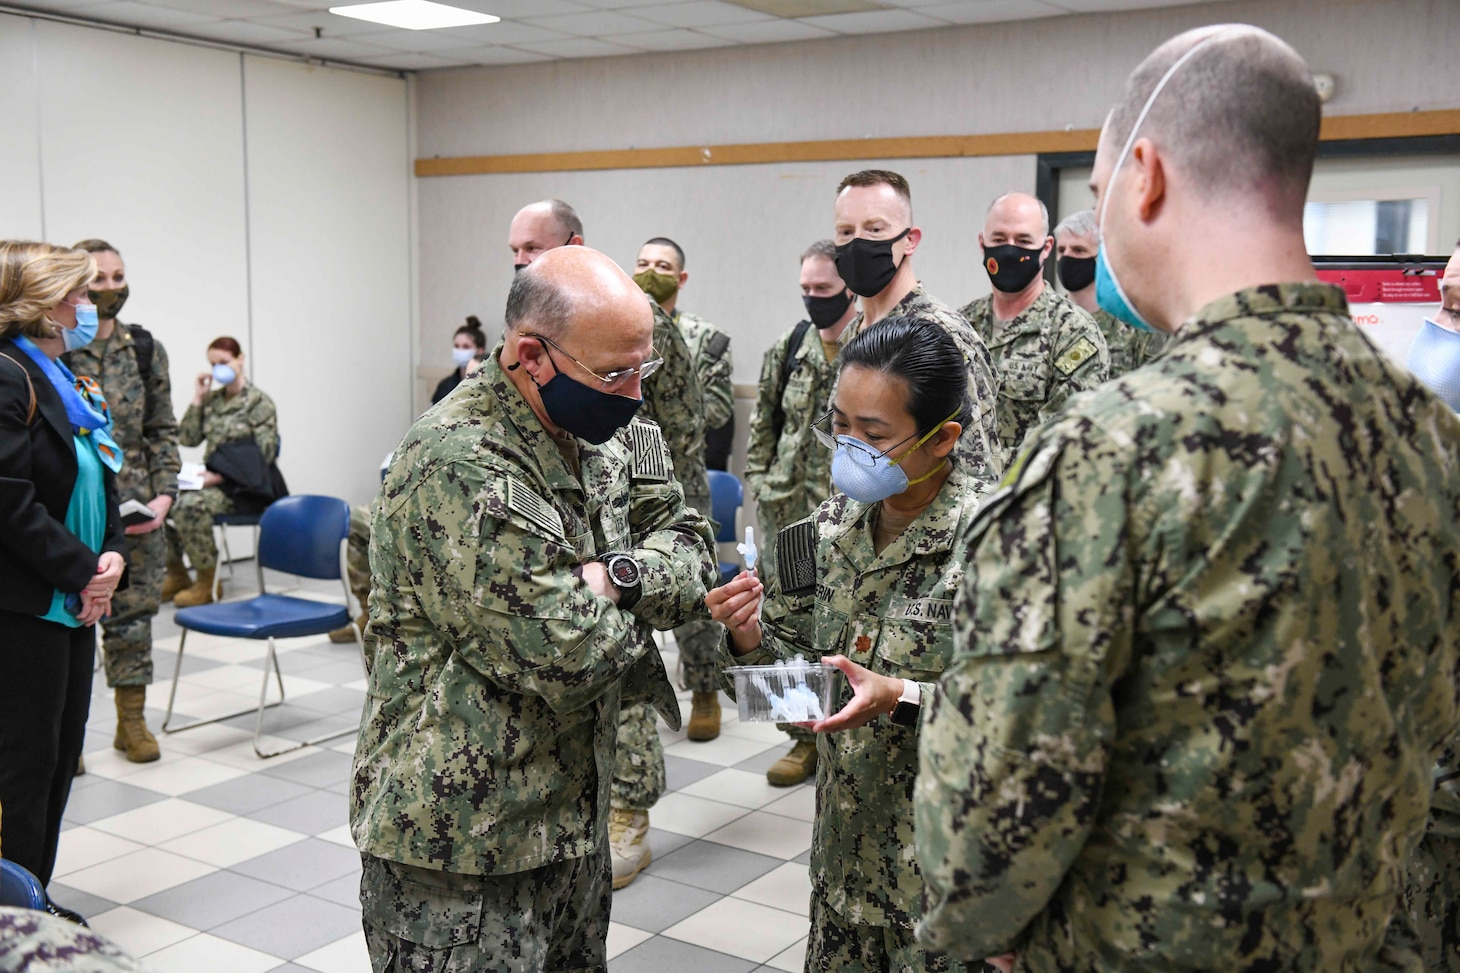 NAVAL SUPPORT ACTIVITY NAPLES, Italy (Jan. 7, 2021) Adm. Michael Gilday, Chief of Naval Operations, left, observes the COVID-19 vaccination site at Naval Support Activity Naples Support Site, Italy, Jan. 7, 2021. U.S. Naval Forces Europe and Africa, headquartered in Naples, Italy, conducts the full spectrum of joint and naval operations, often in concert with allied and interagency partners, in order to advance U.S. national interests, security and stability in Europe and Africa. (U.S. Navy photo by Mass Communication Specialist 3rd Class Trey Fowler/ Released)